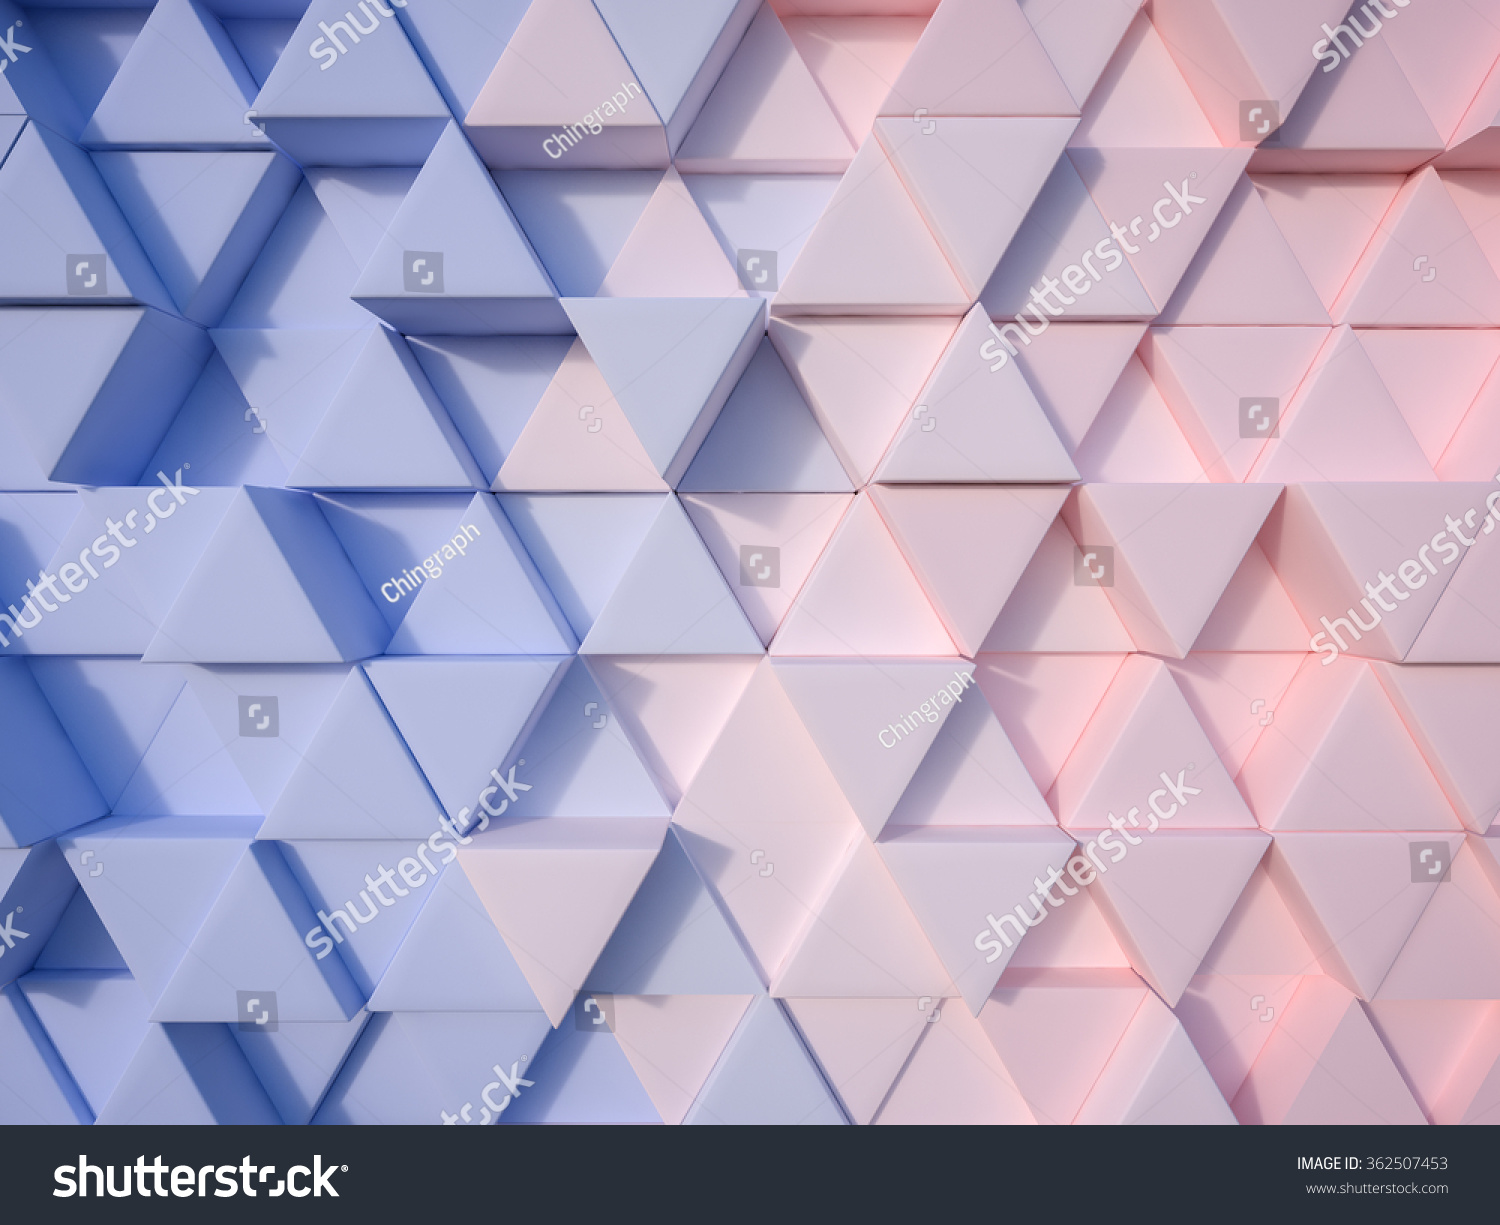 serenity blue rose quartz abstract 3d stock illustration 362507453 shutterstock. Black Bedroom Furniture Sets. Home Design Ideas